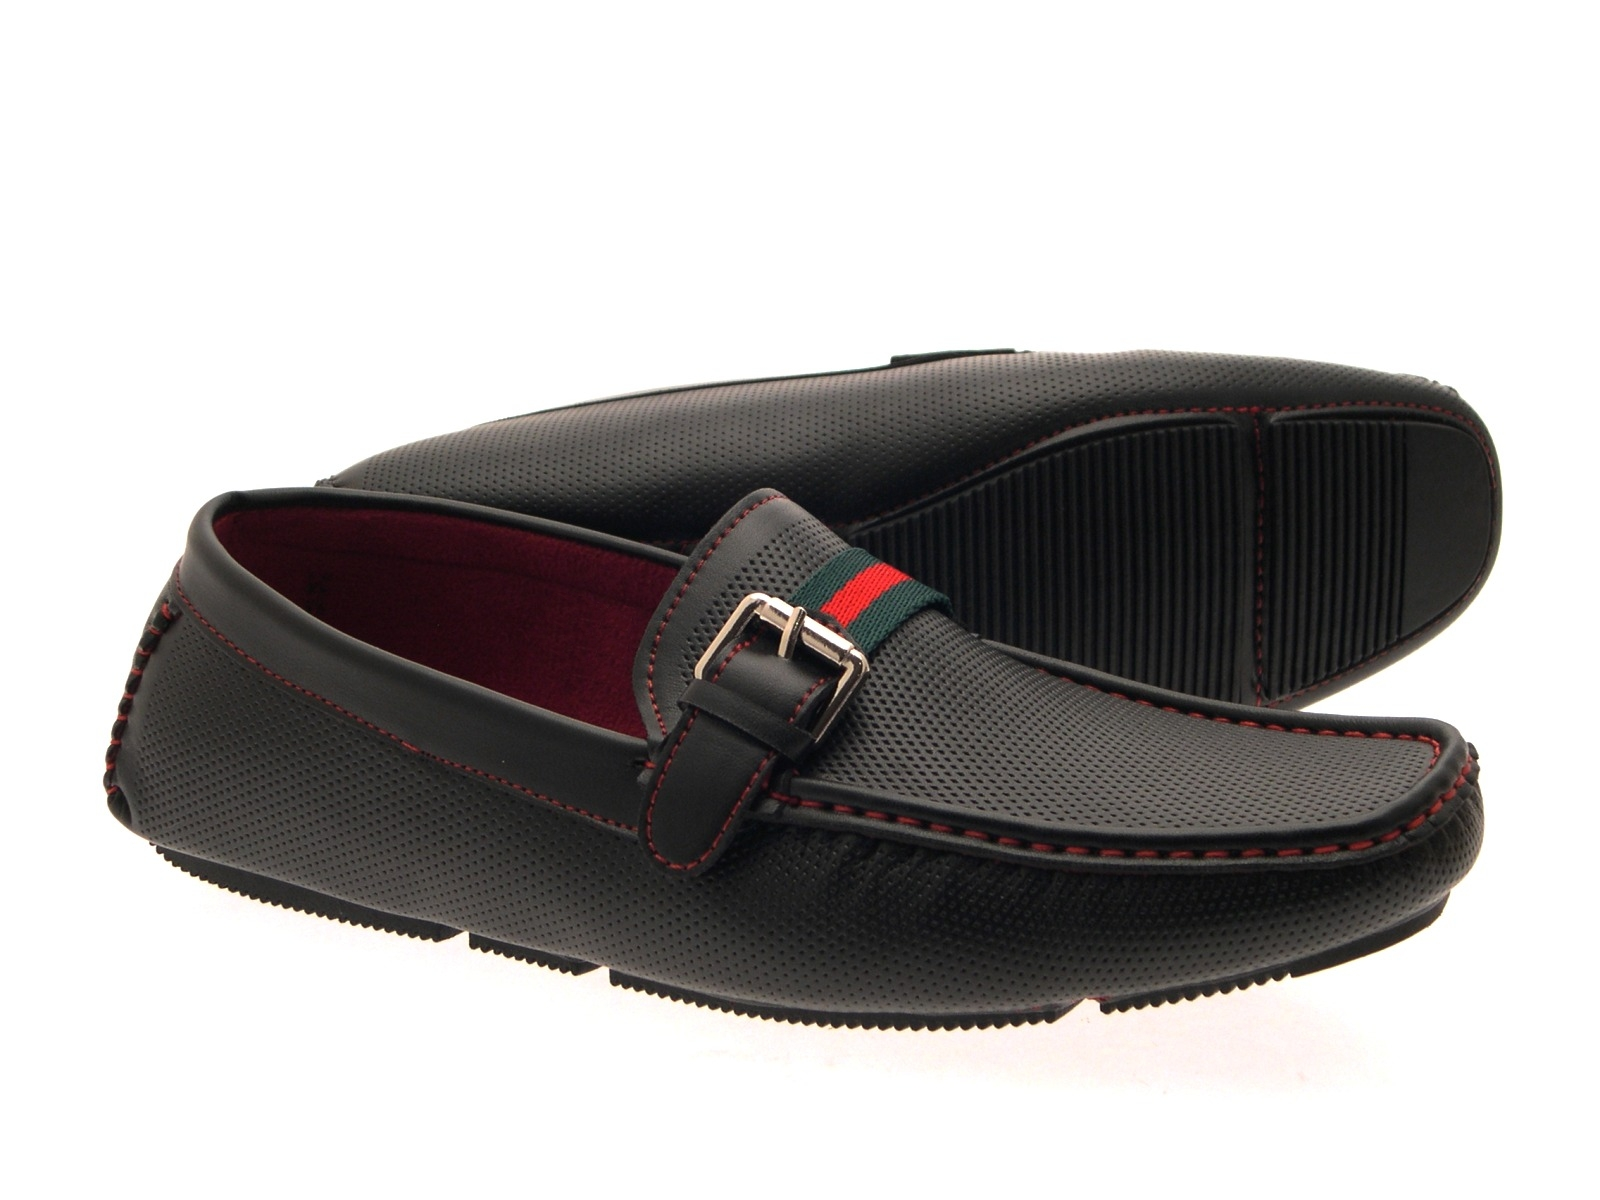 MENS MOCCASIN LOAFERS FORMAL MULES CASUAL SLIP ON FAUX LEATHER SHOES SIZE 6 - 11 | EBay